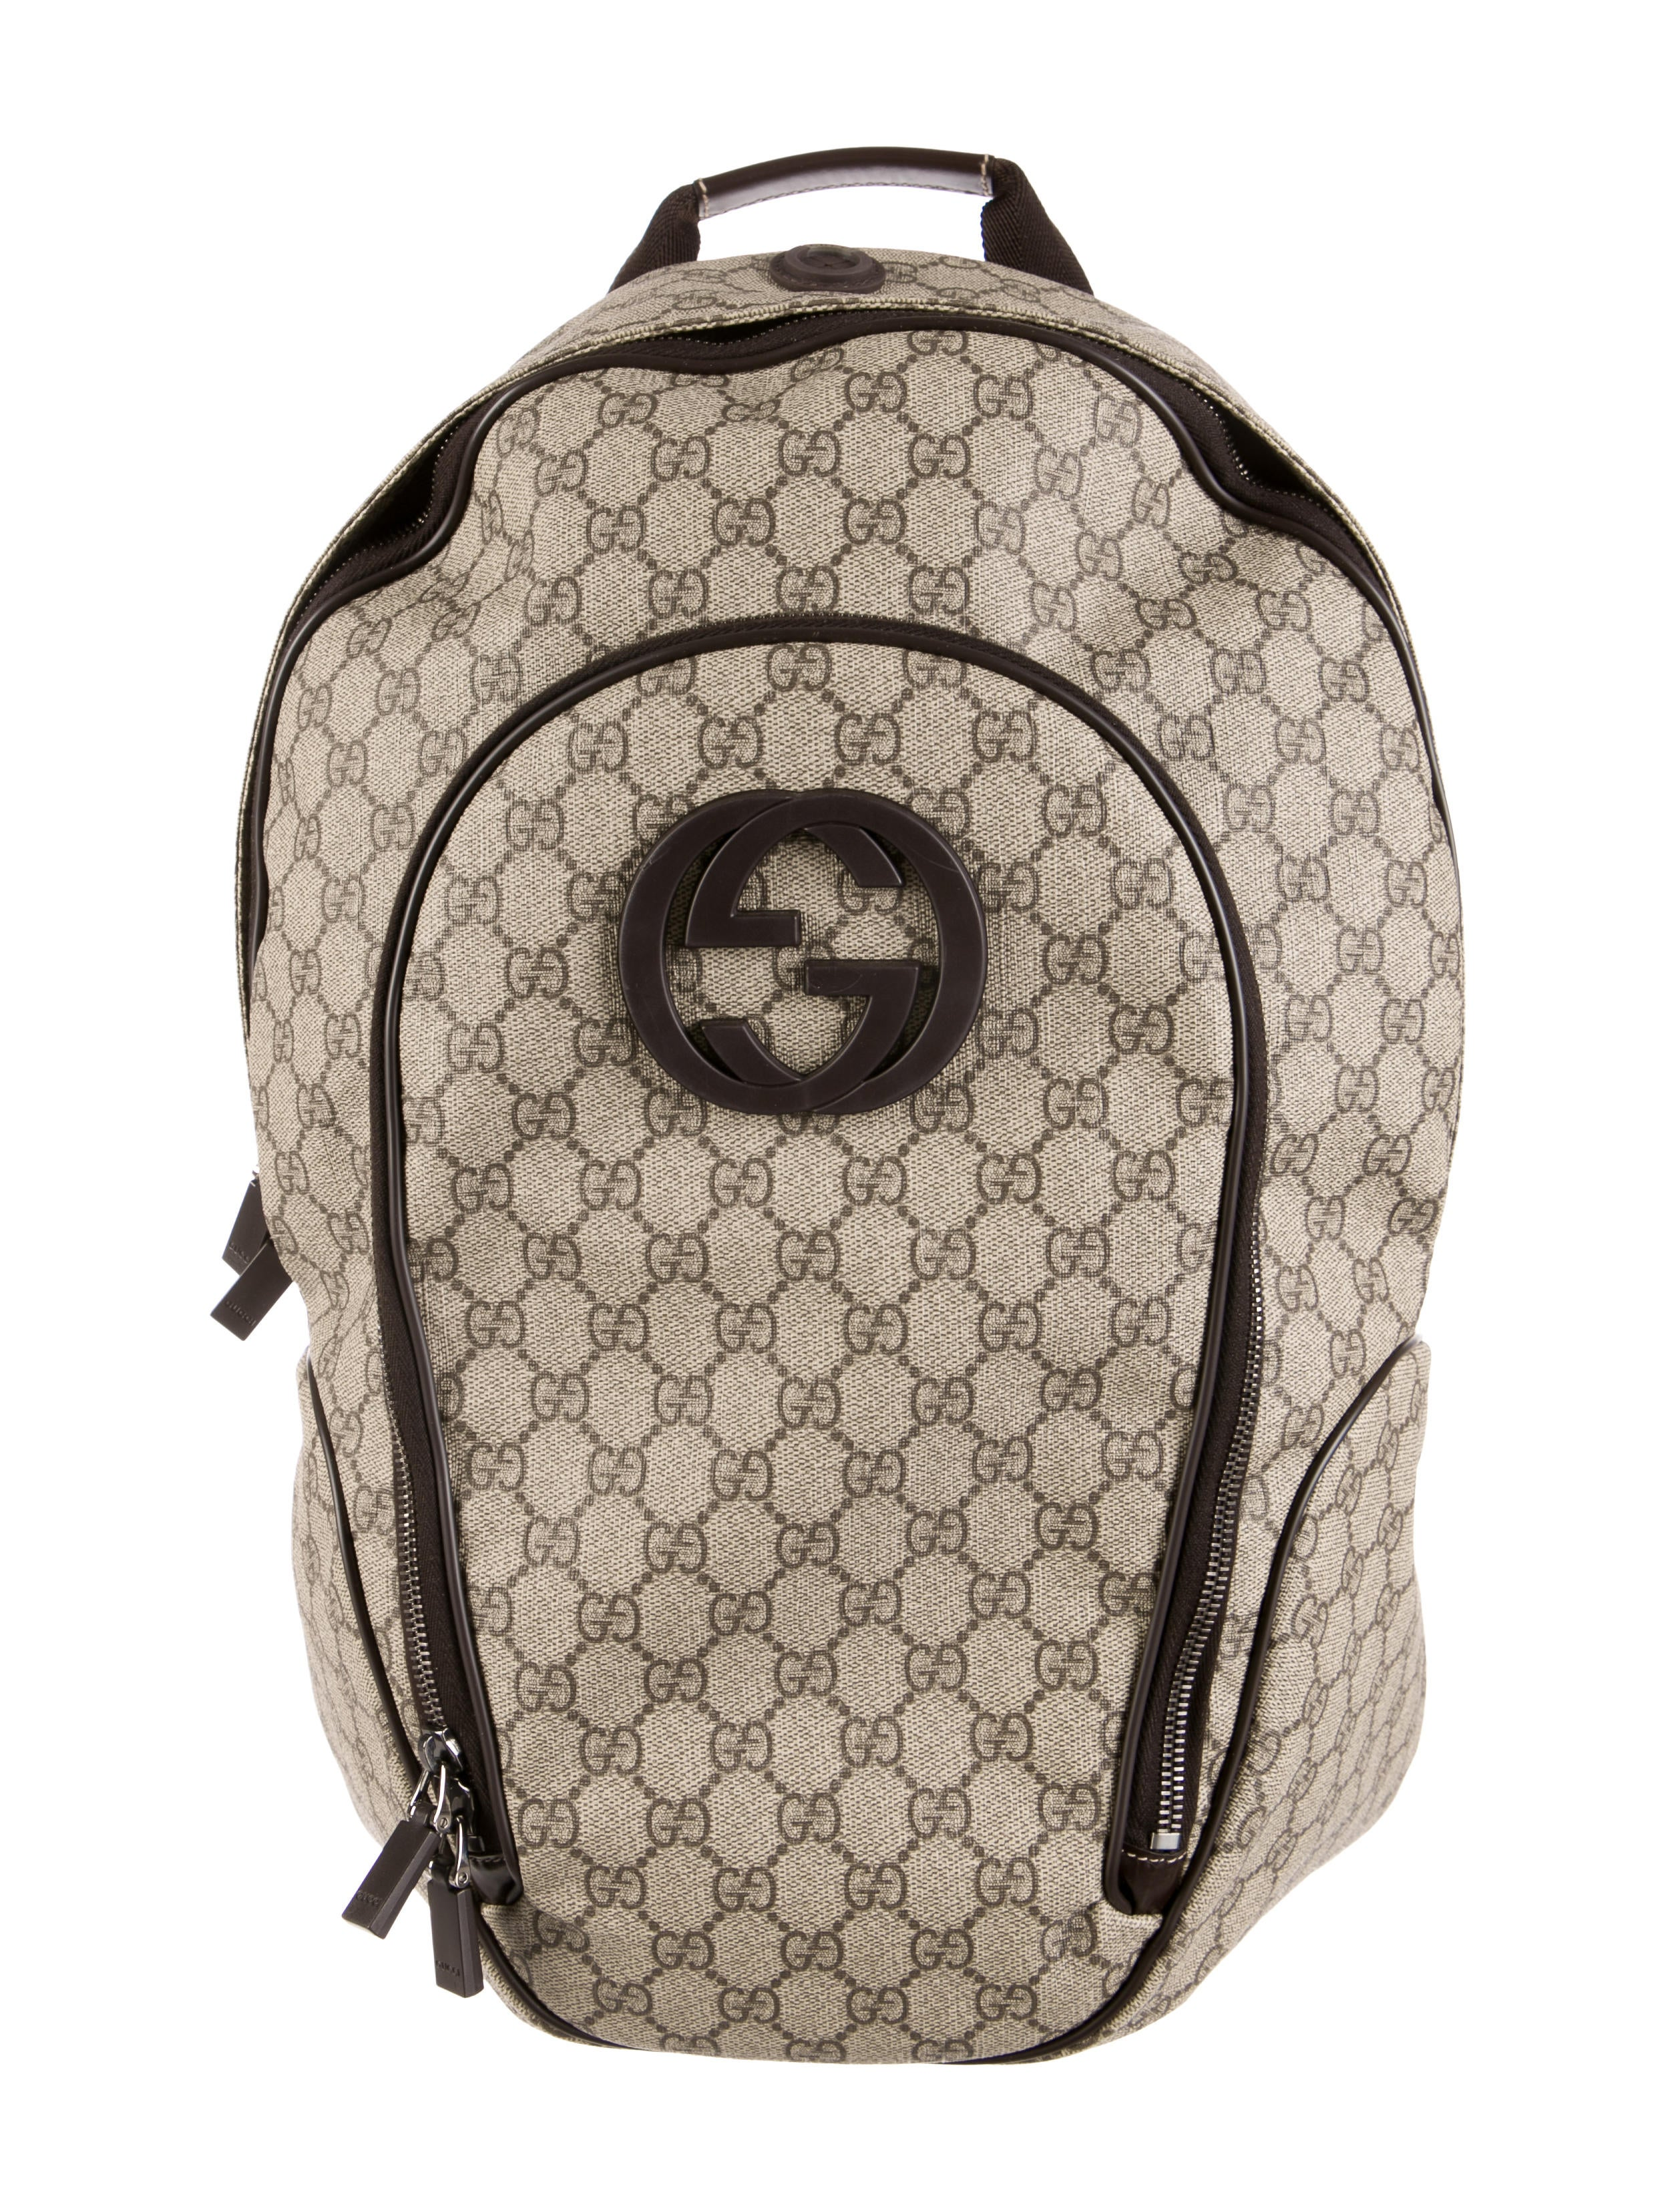 d83286e4327 Gucci GG Supreme Interlocking G Backpack - Bags - GUC78925